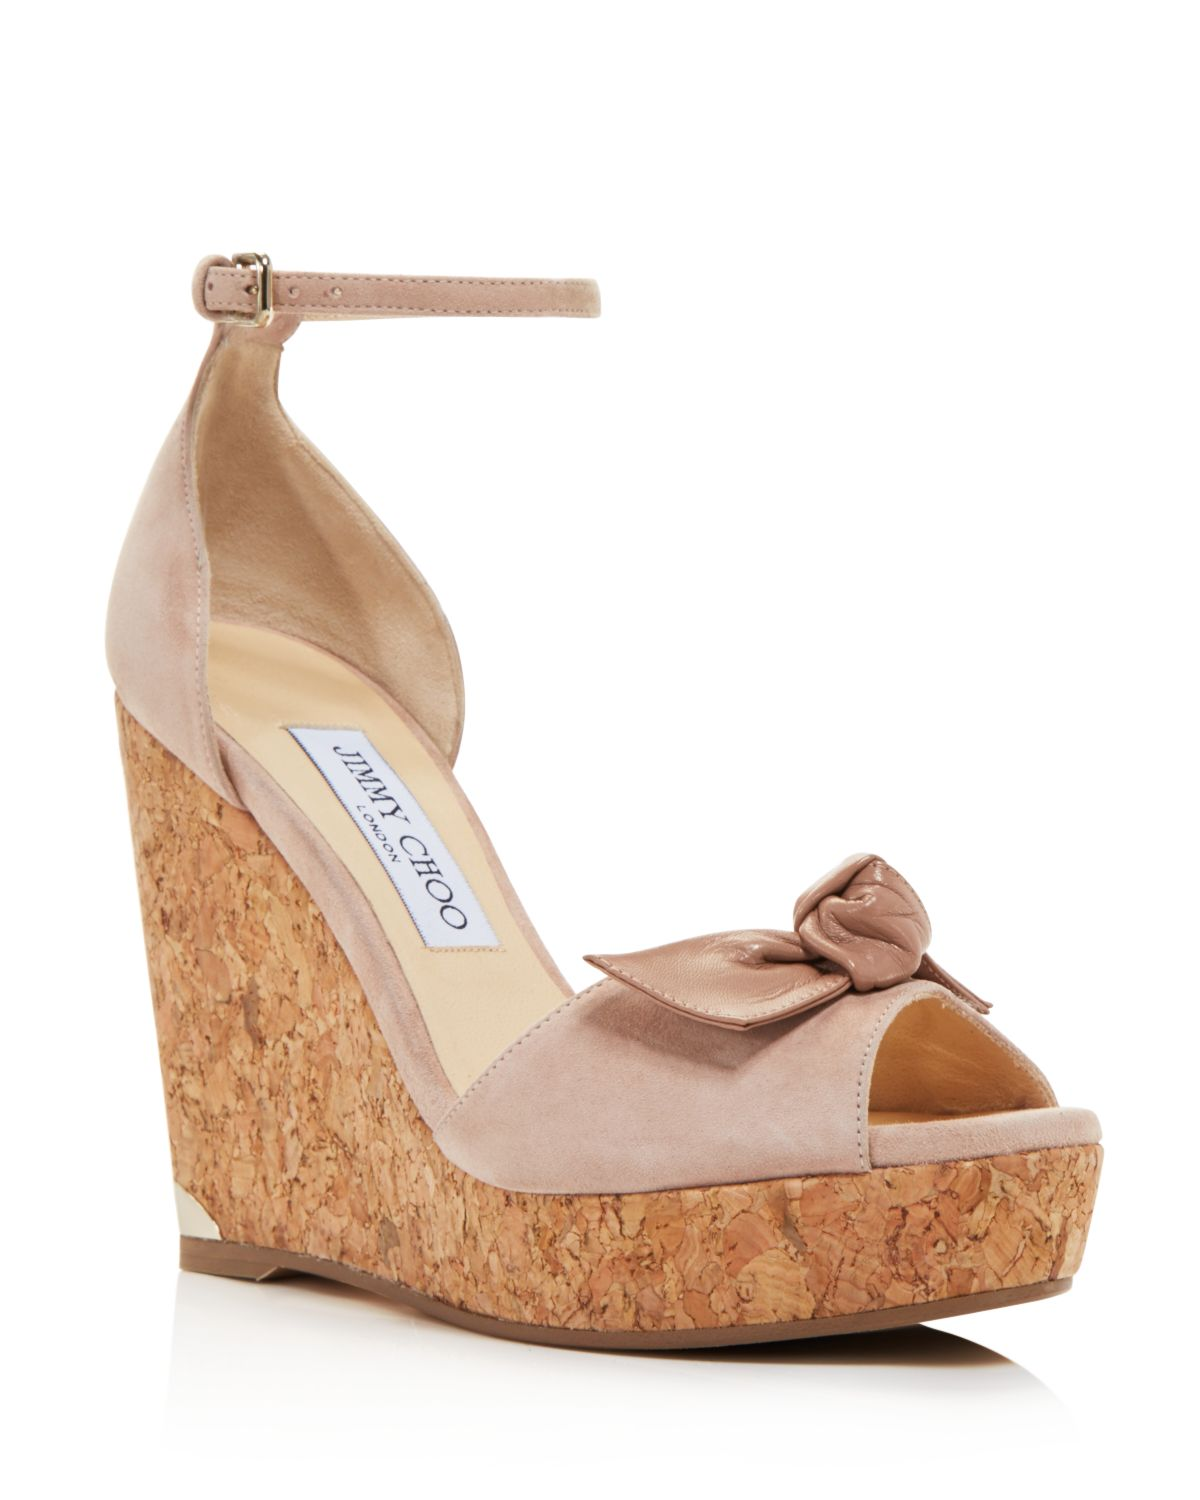 Jimmy choo Women's Dessie 120 Suede Platform Wedge Peep Toe Sandals